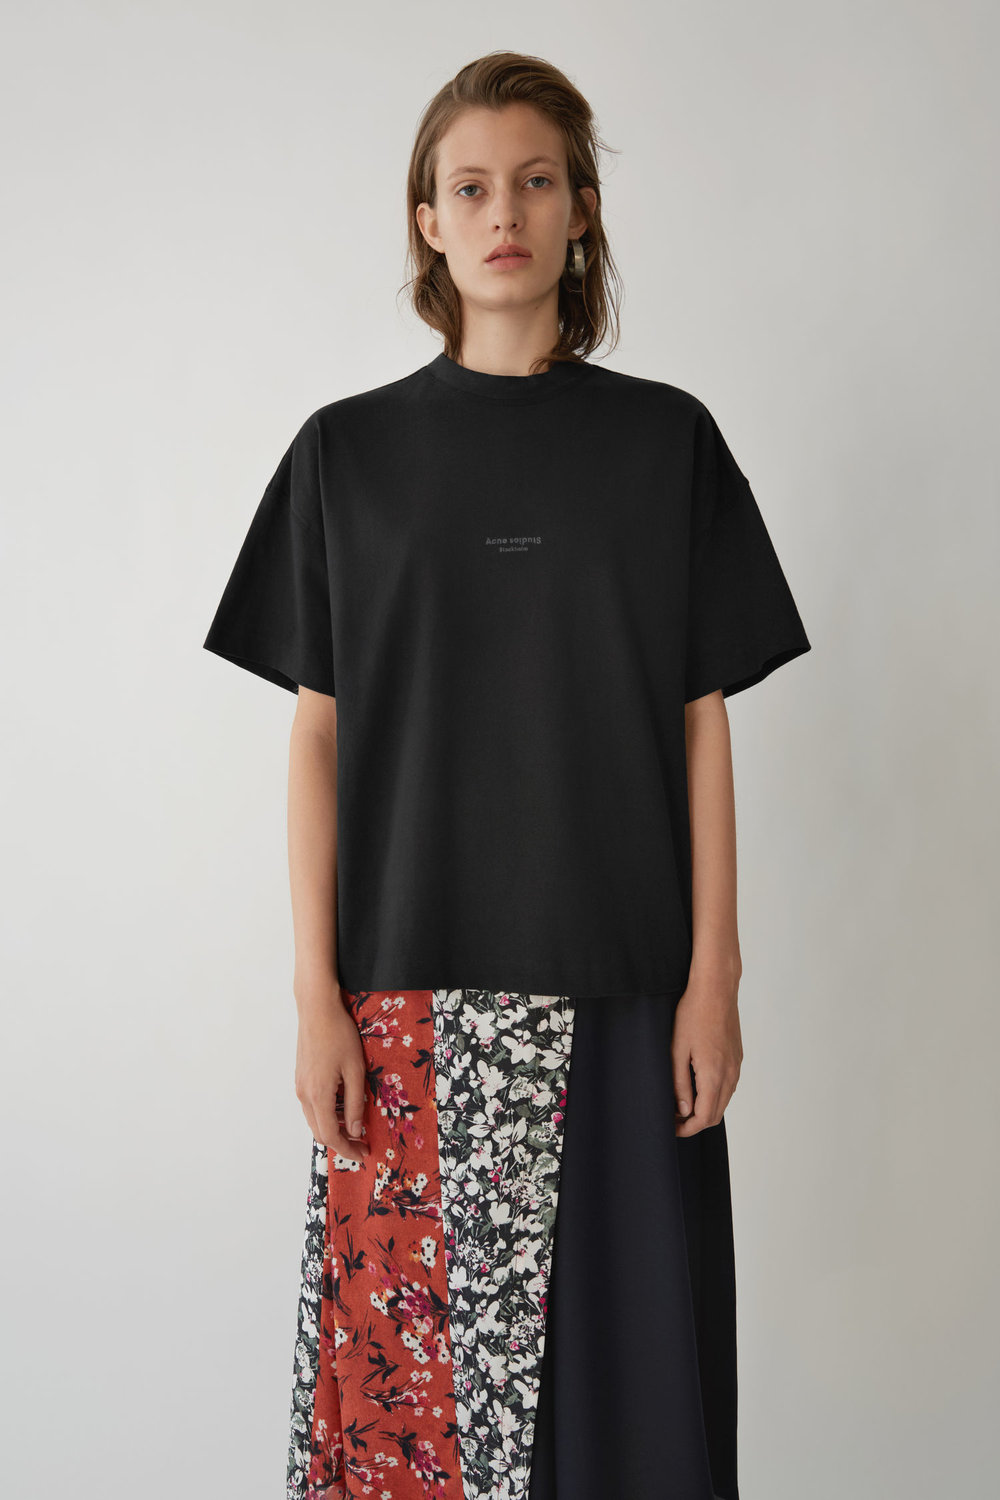 acne studios stellie top